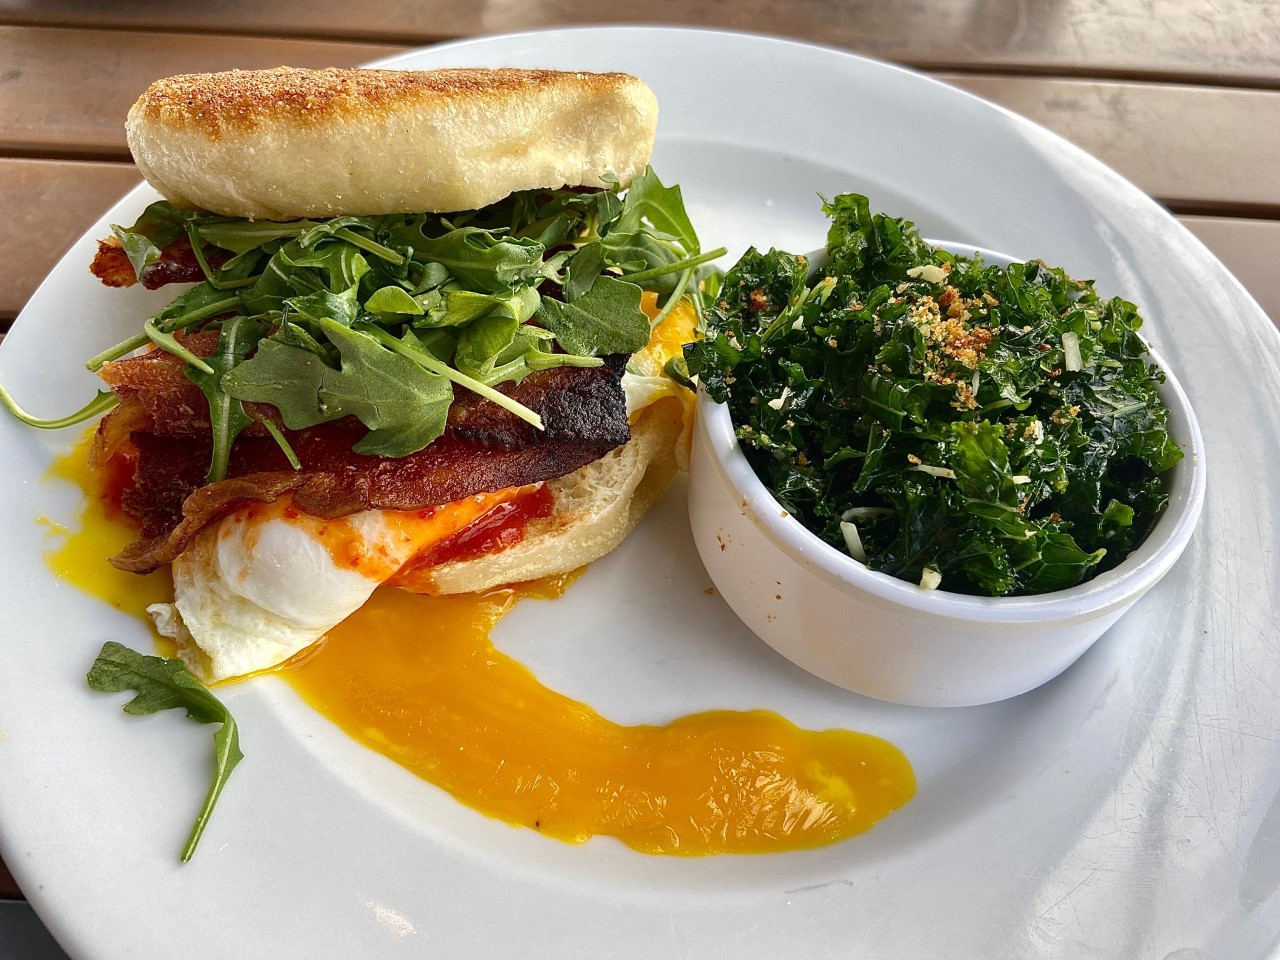 breakfast sandwich make with bacon, gruyere cheese, and arugula....